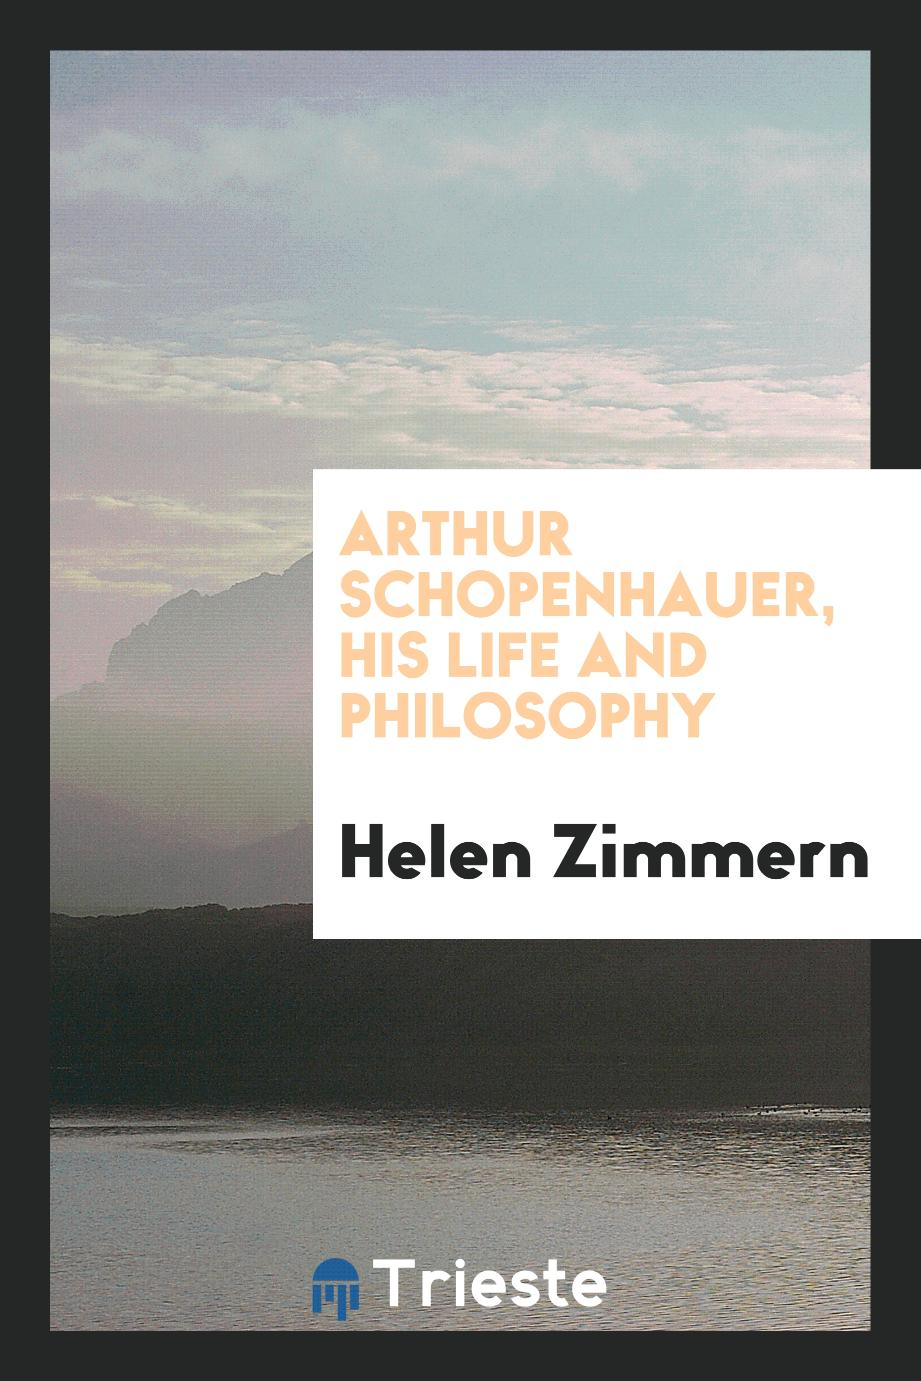 Arthur Schopenhauer, his life and philosophy